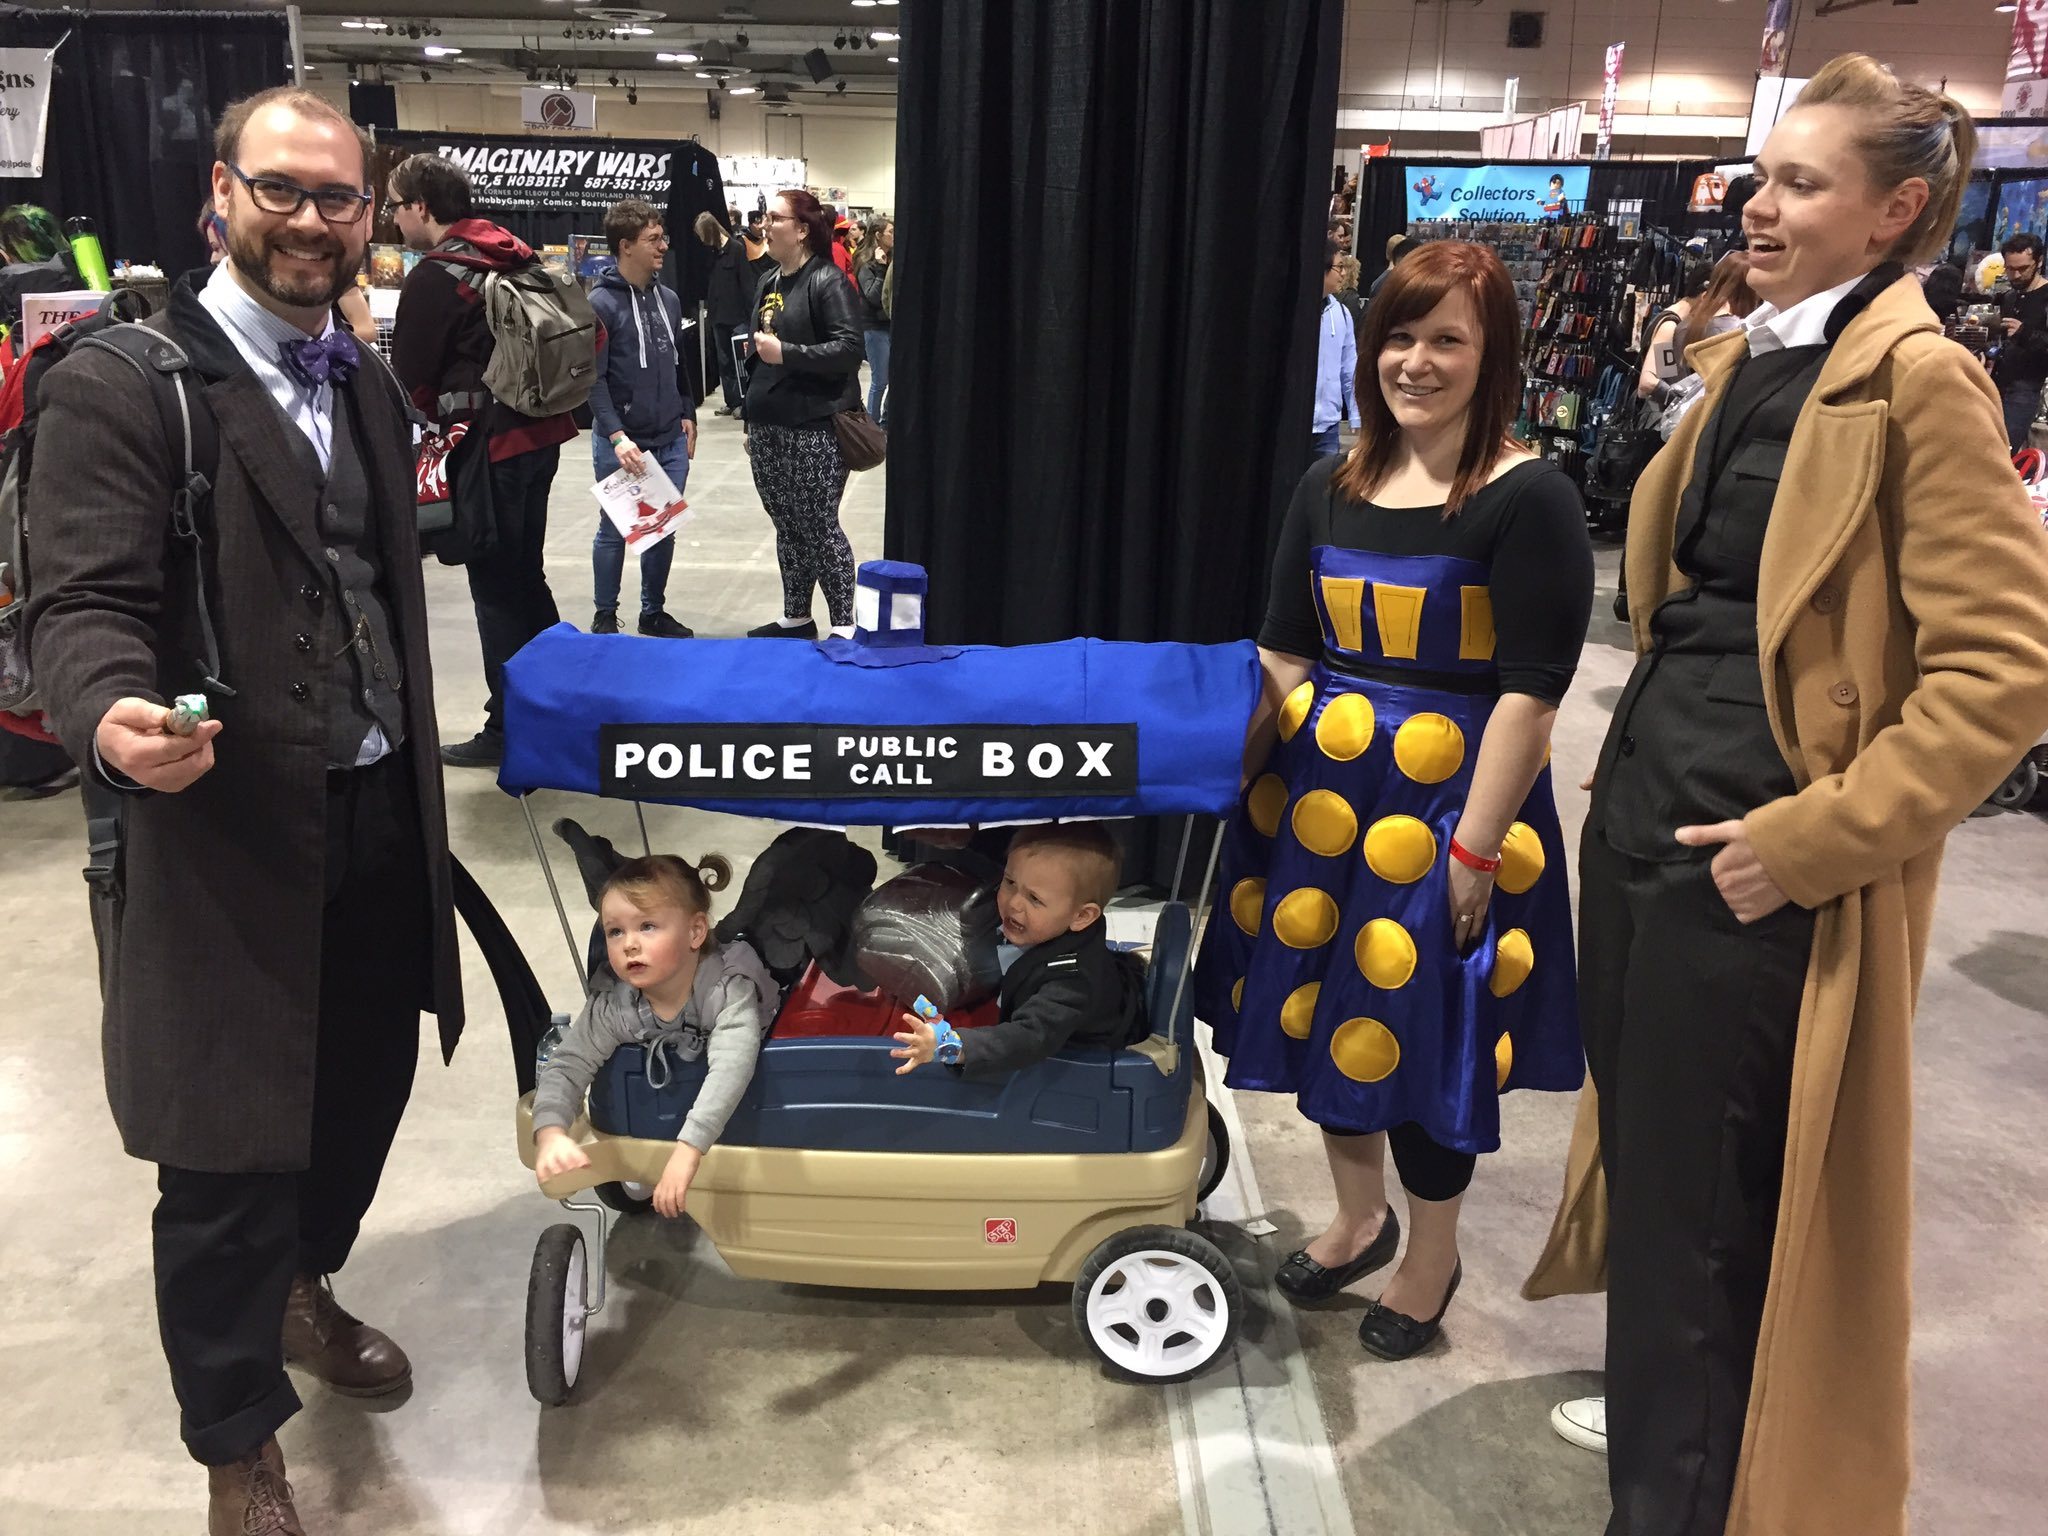 #DoctorWho: fun for the whole family. #CalgaryExpo https://t.co/S4hEYTKbxV